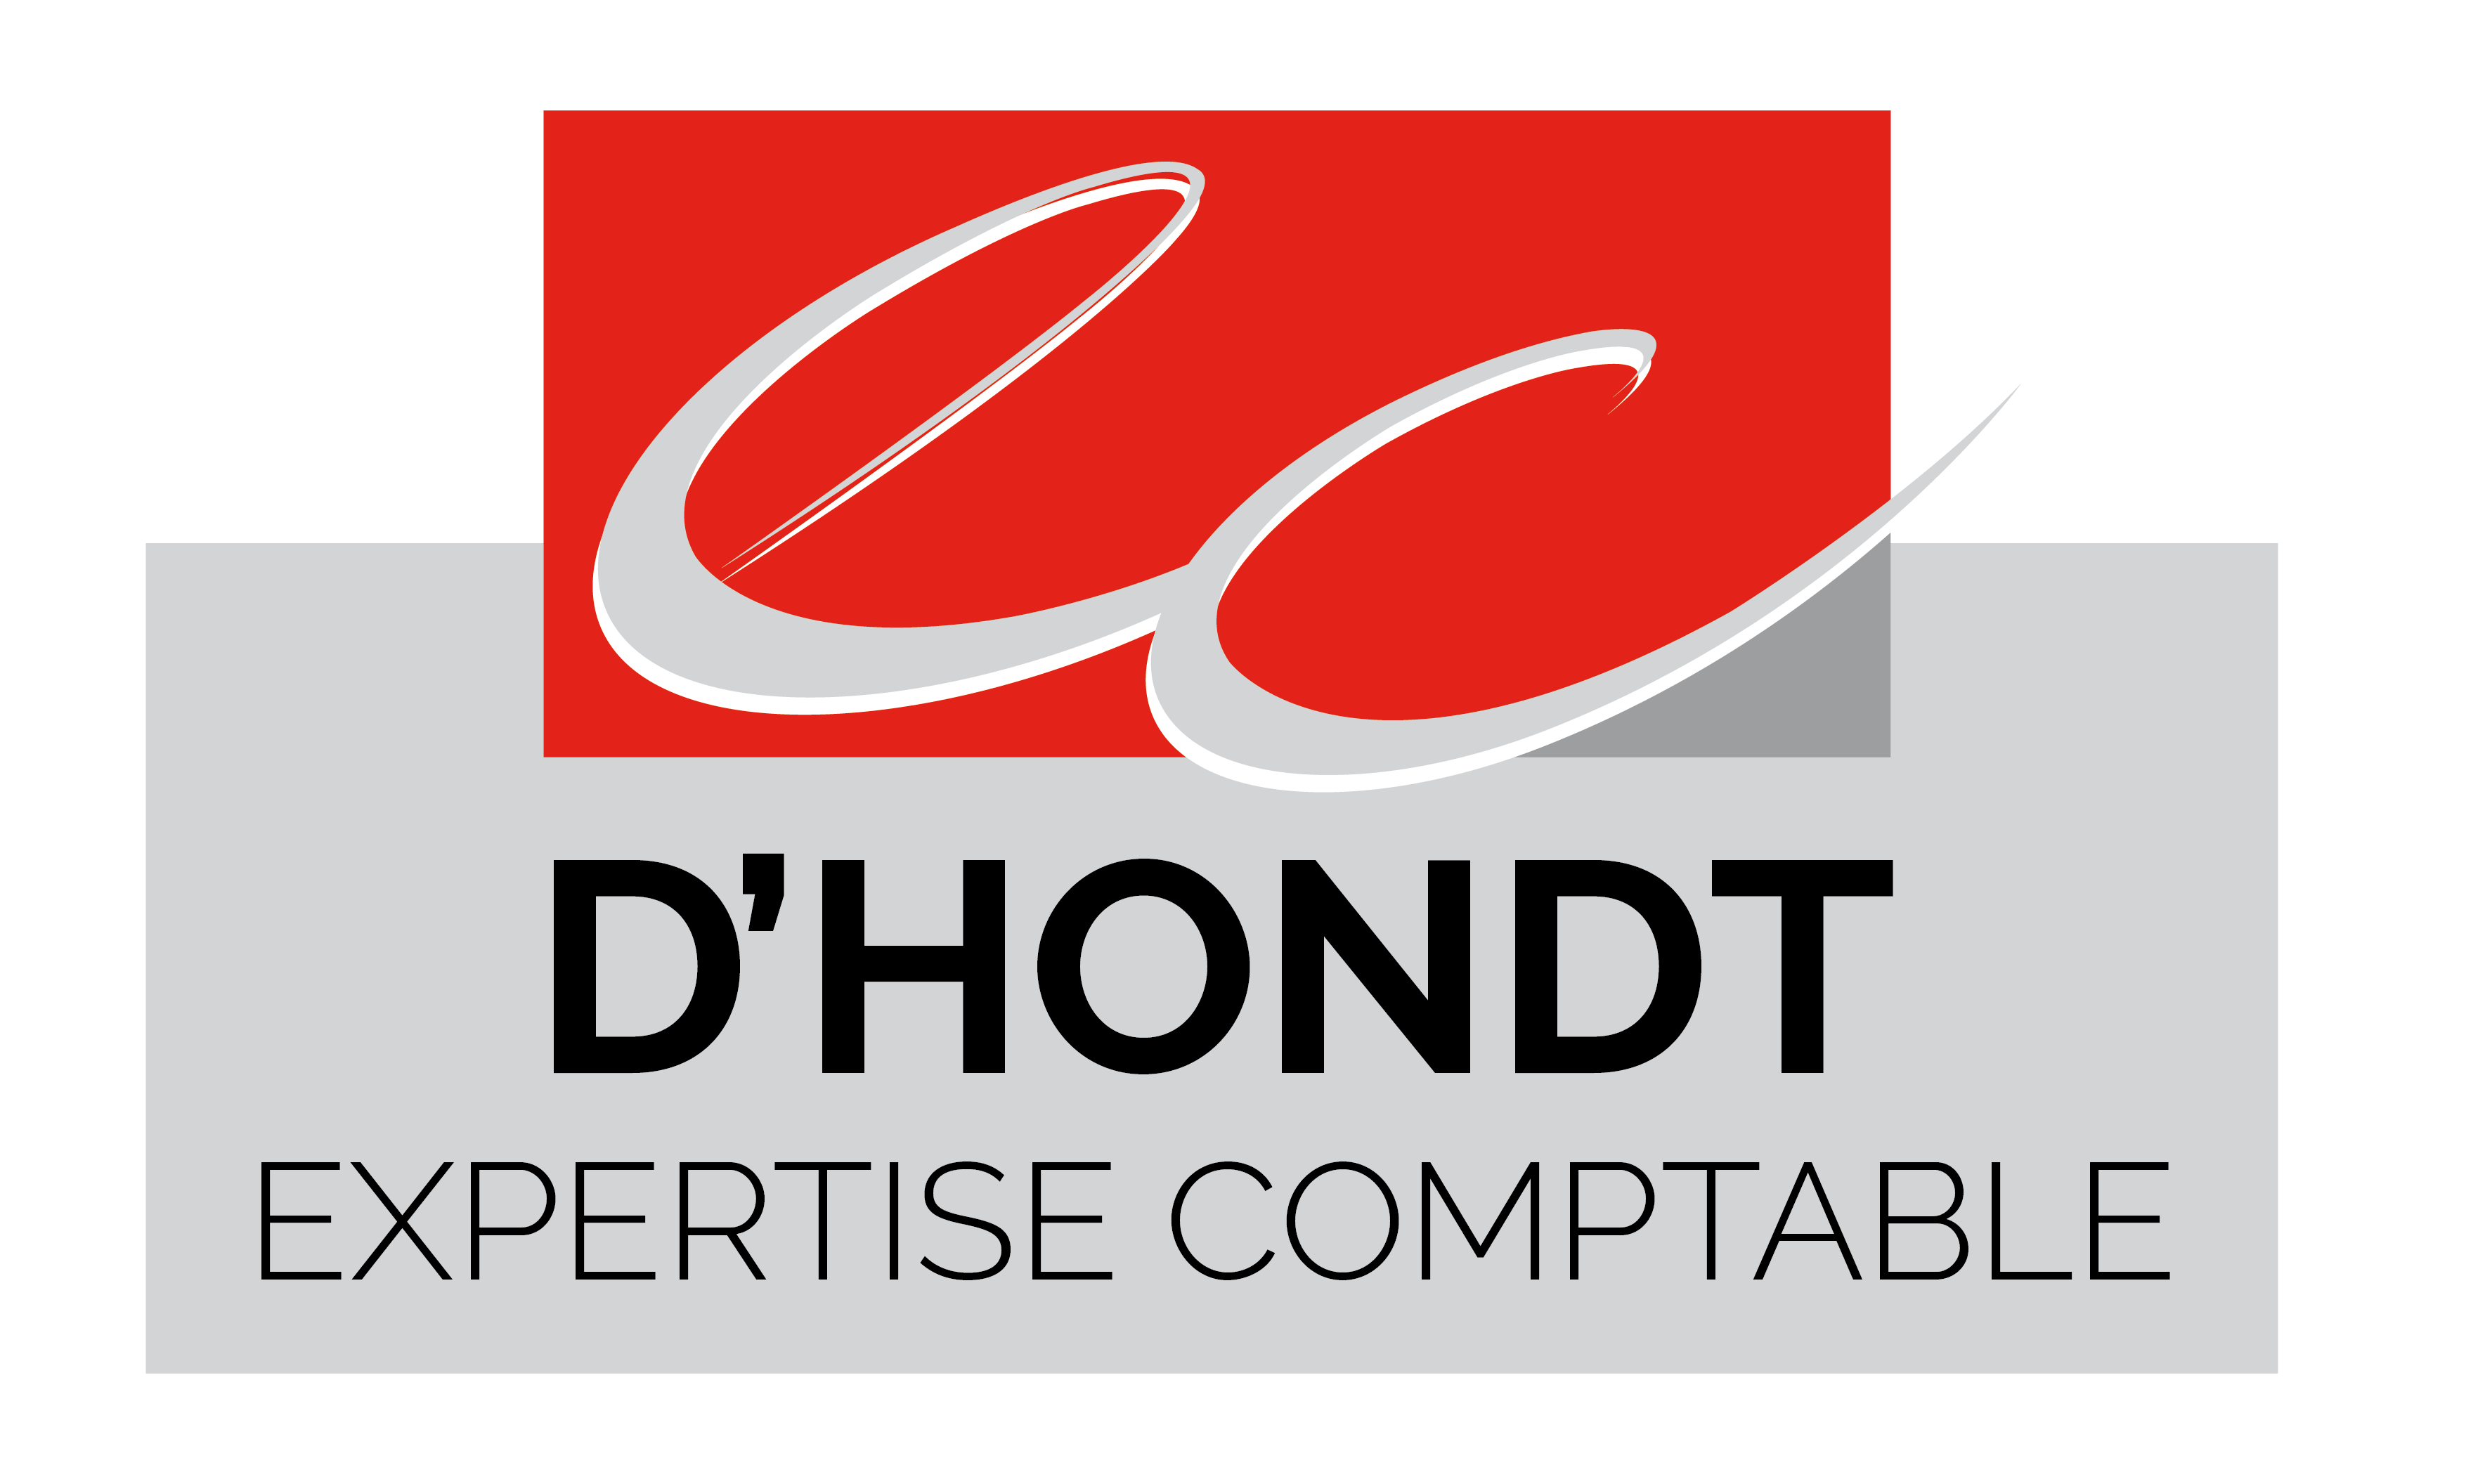 Cabinet D'HONDT Expertise Comptable